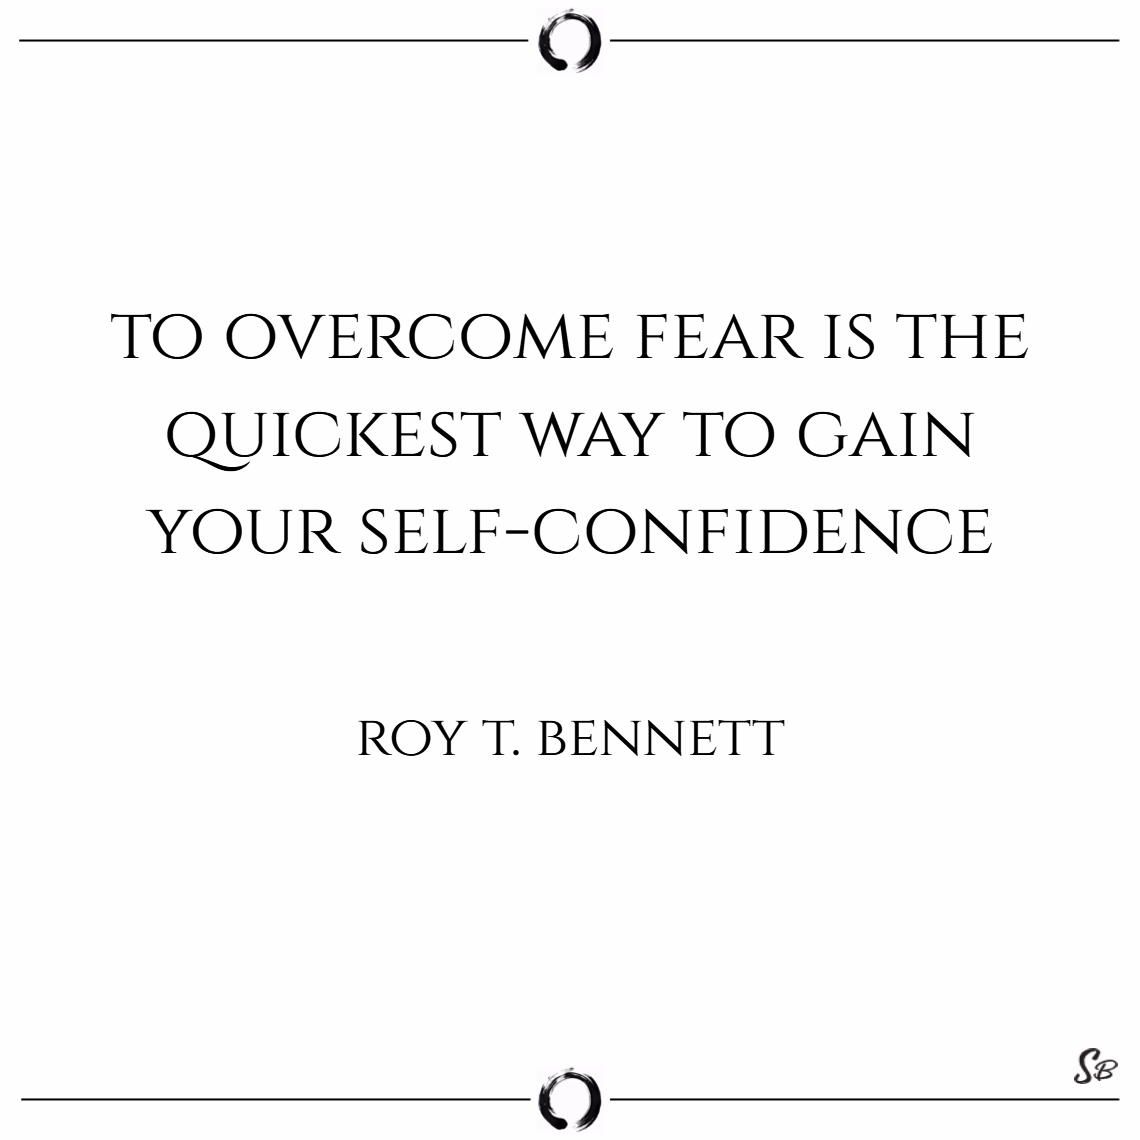 To overcome fear is the quickest way to gain your self confidence. – roy t. bennett